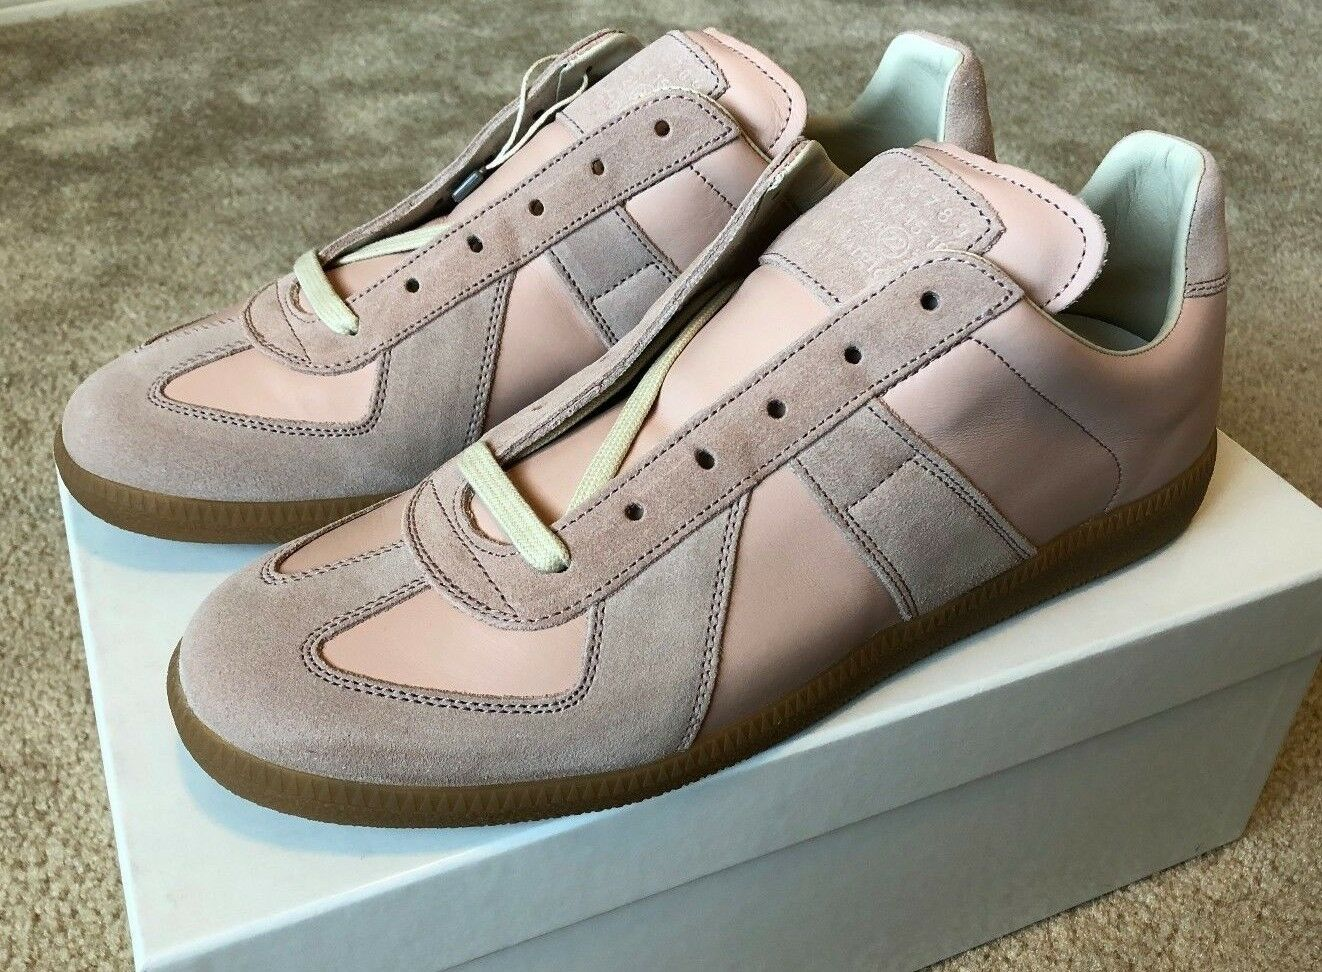 Maison Martin Margiela MMM Replica GAT Sneakers Blush sz 10 US 43 EU NEW 470